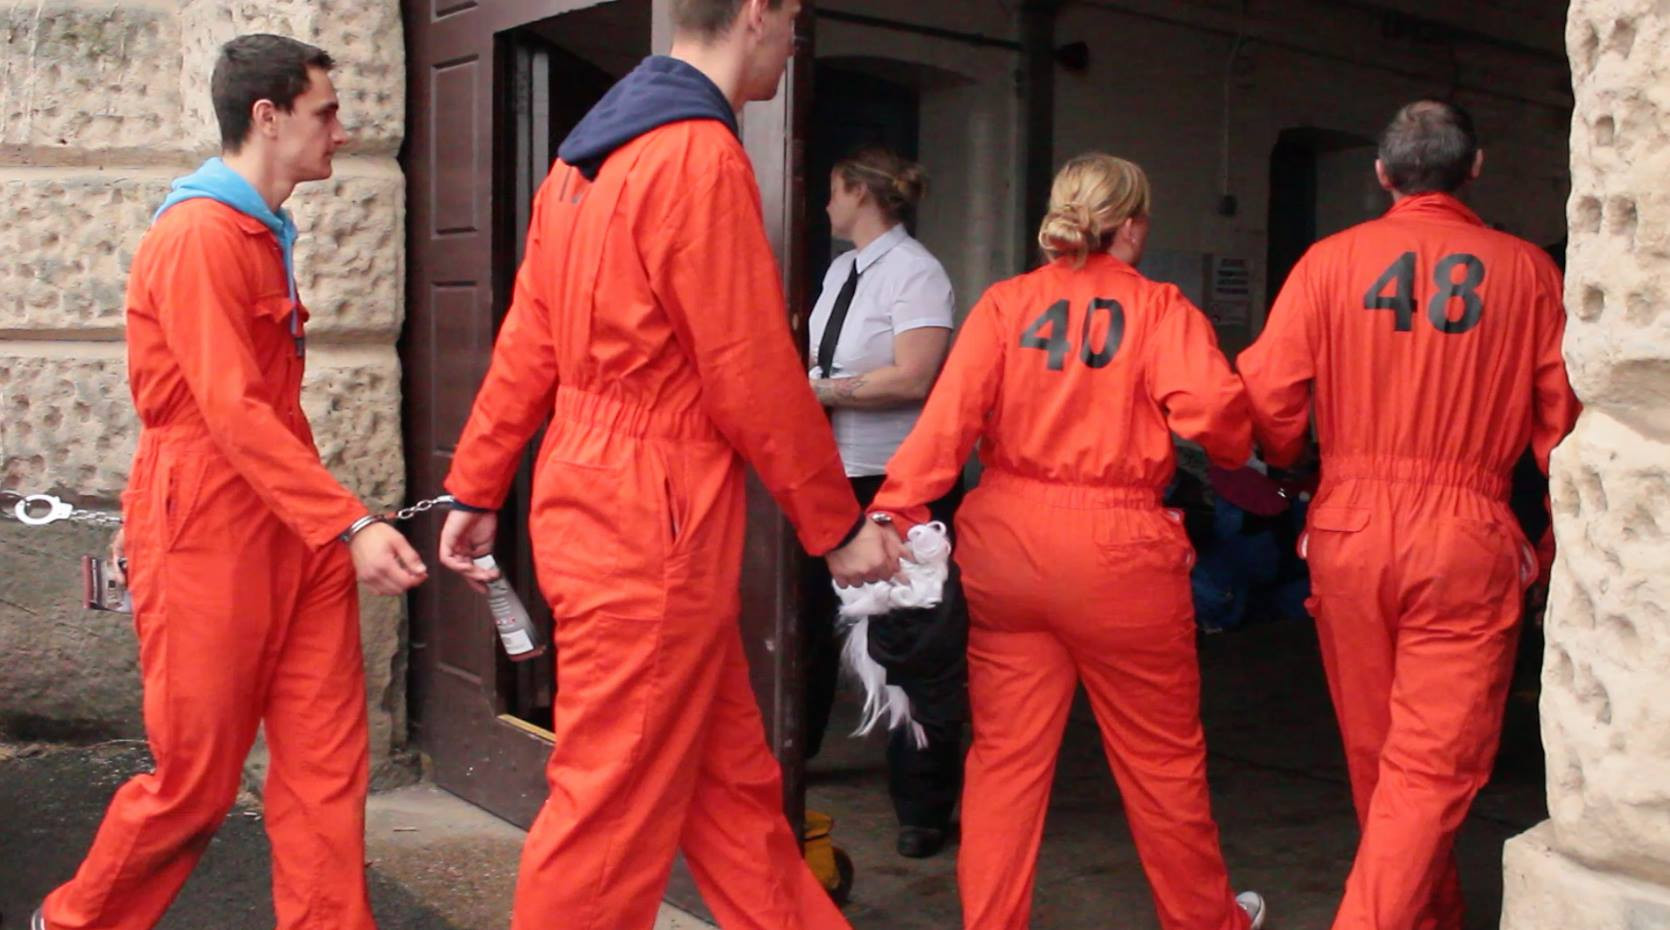 Escapees caught immersive events